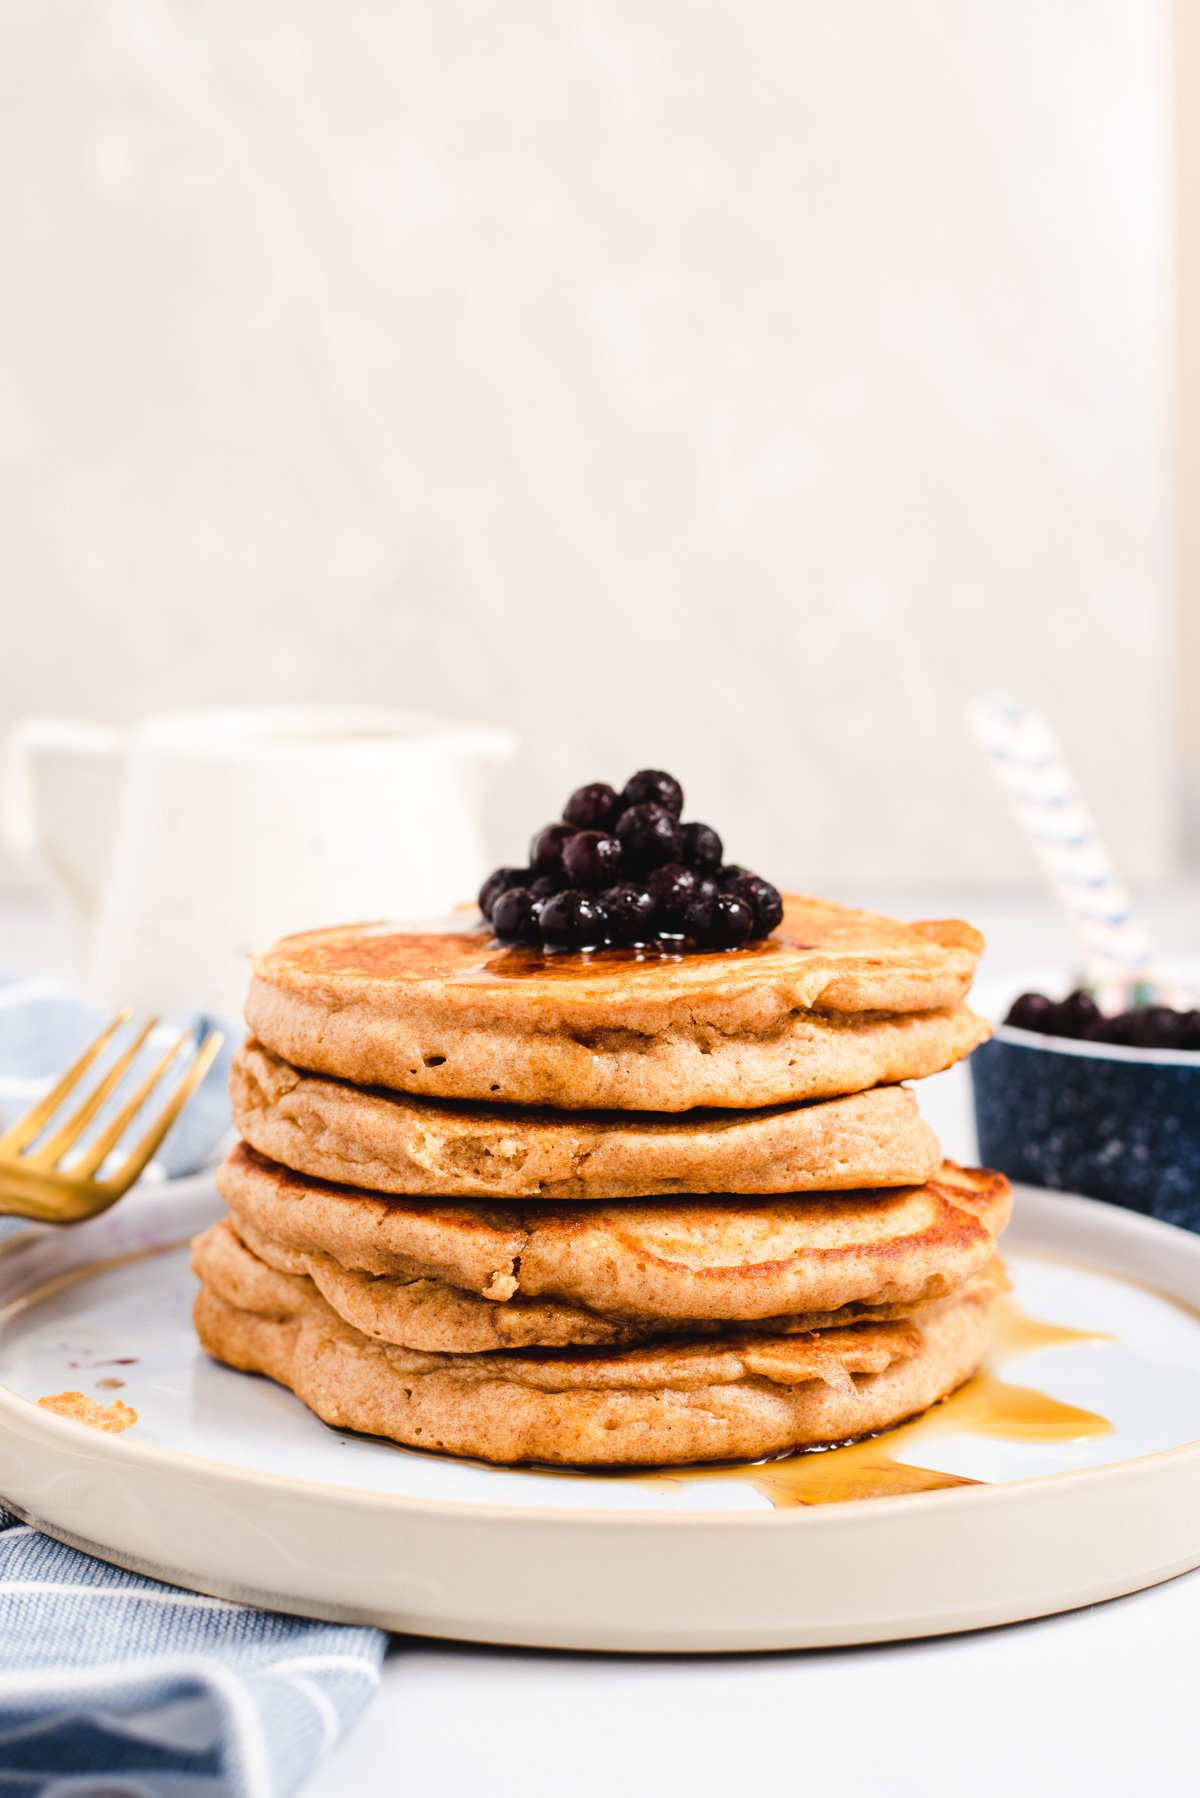 Stack of pancakes with blueberries son top